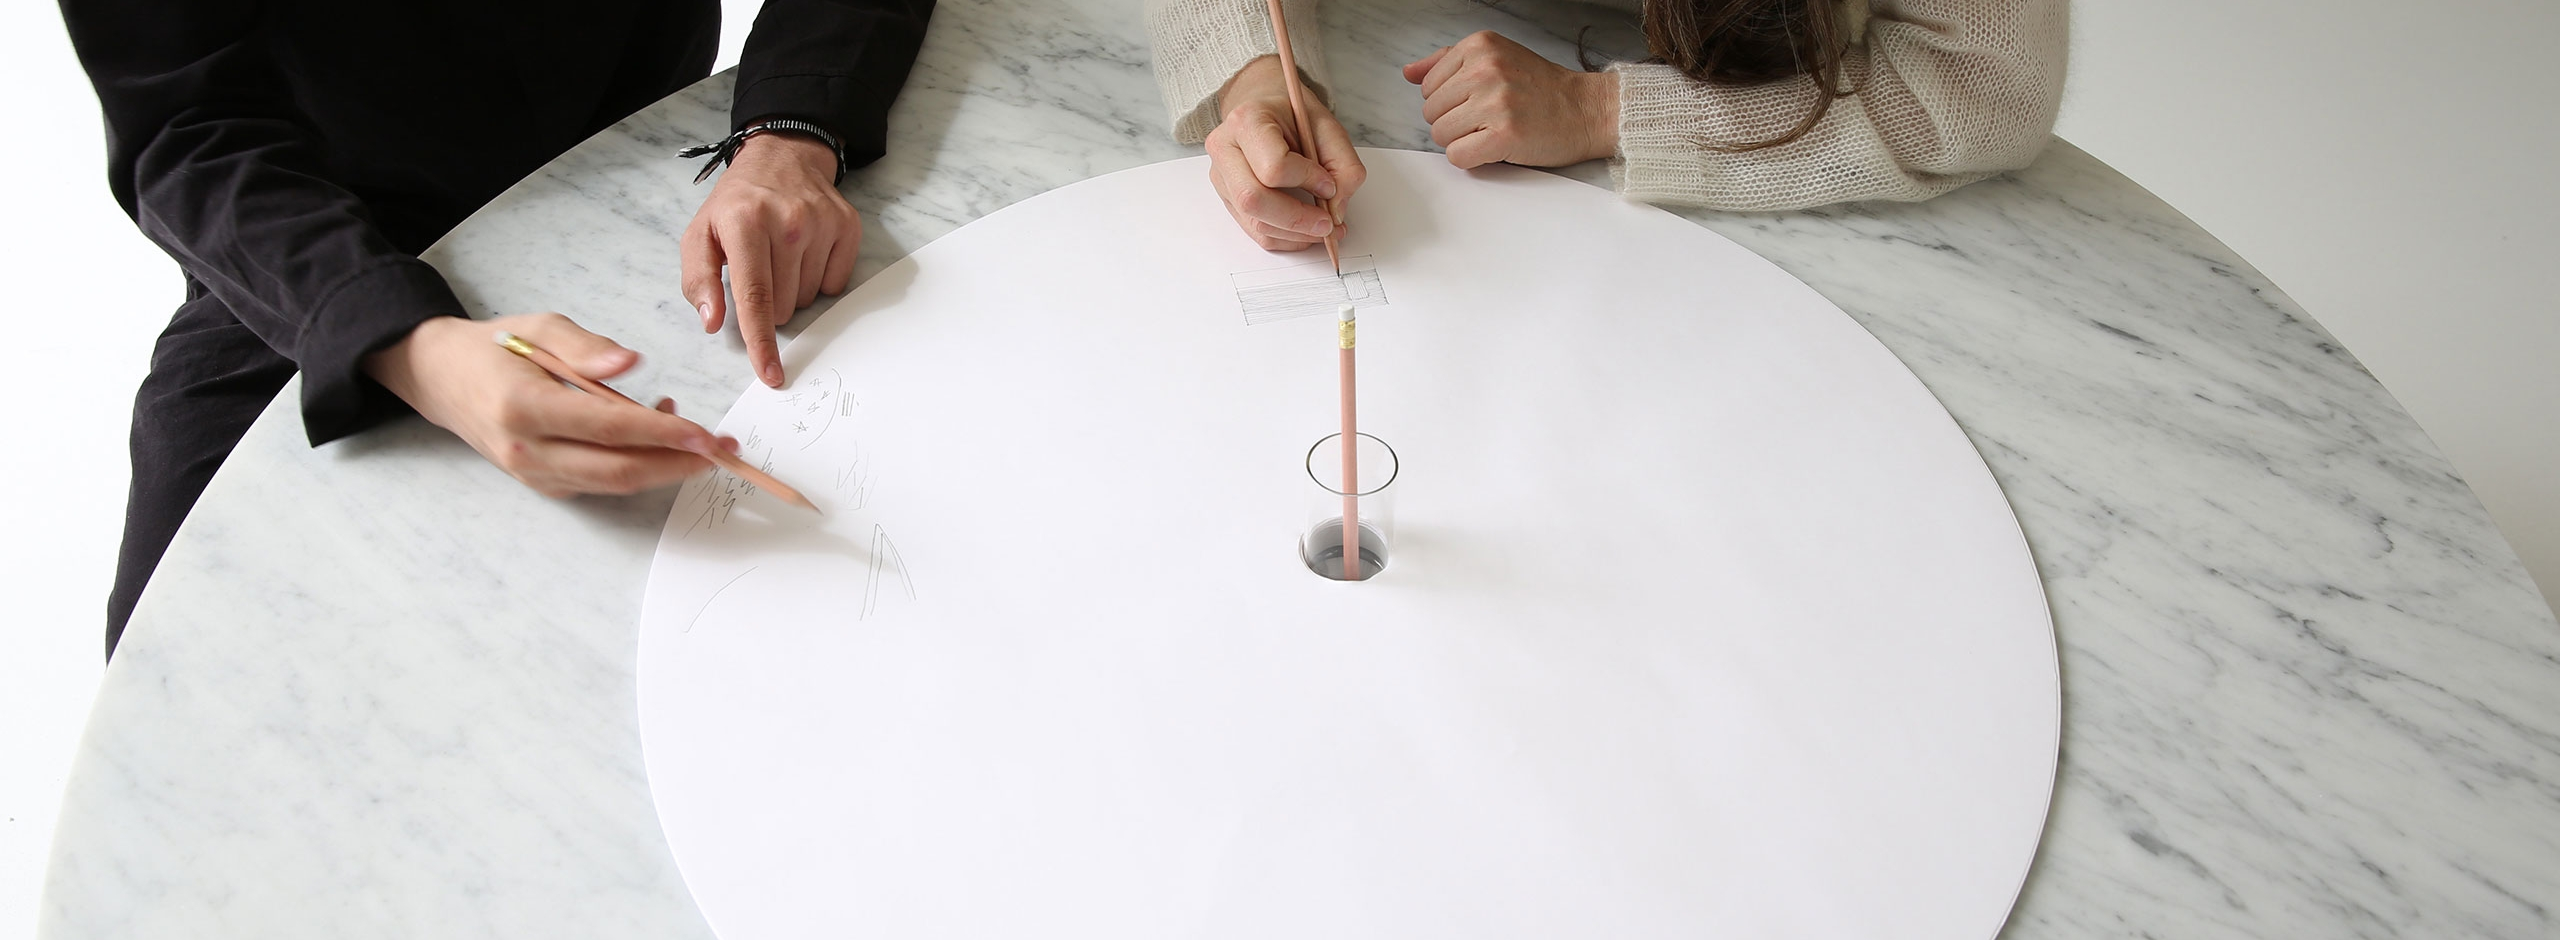 sketching circles for round cantilever table